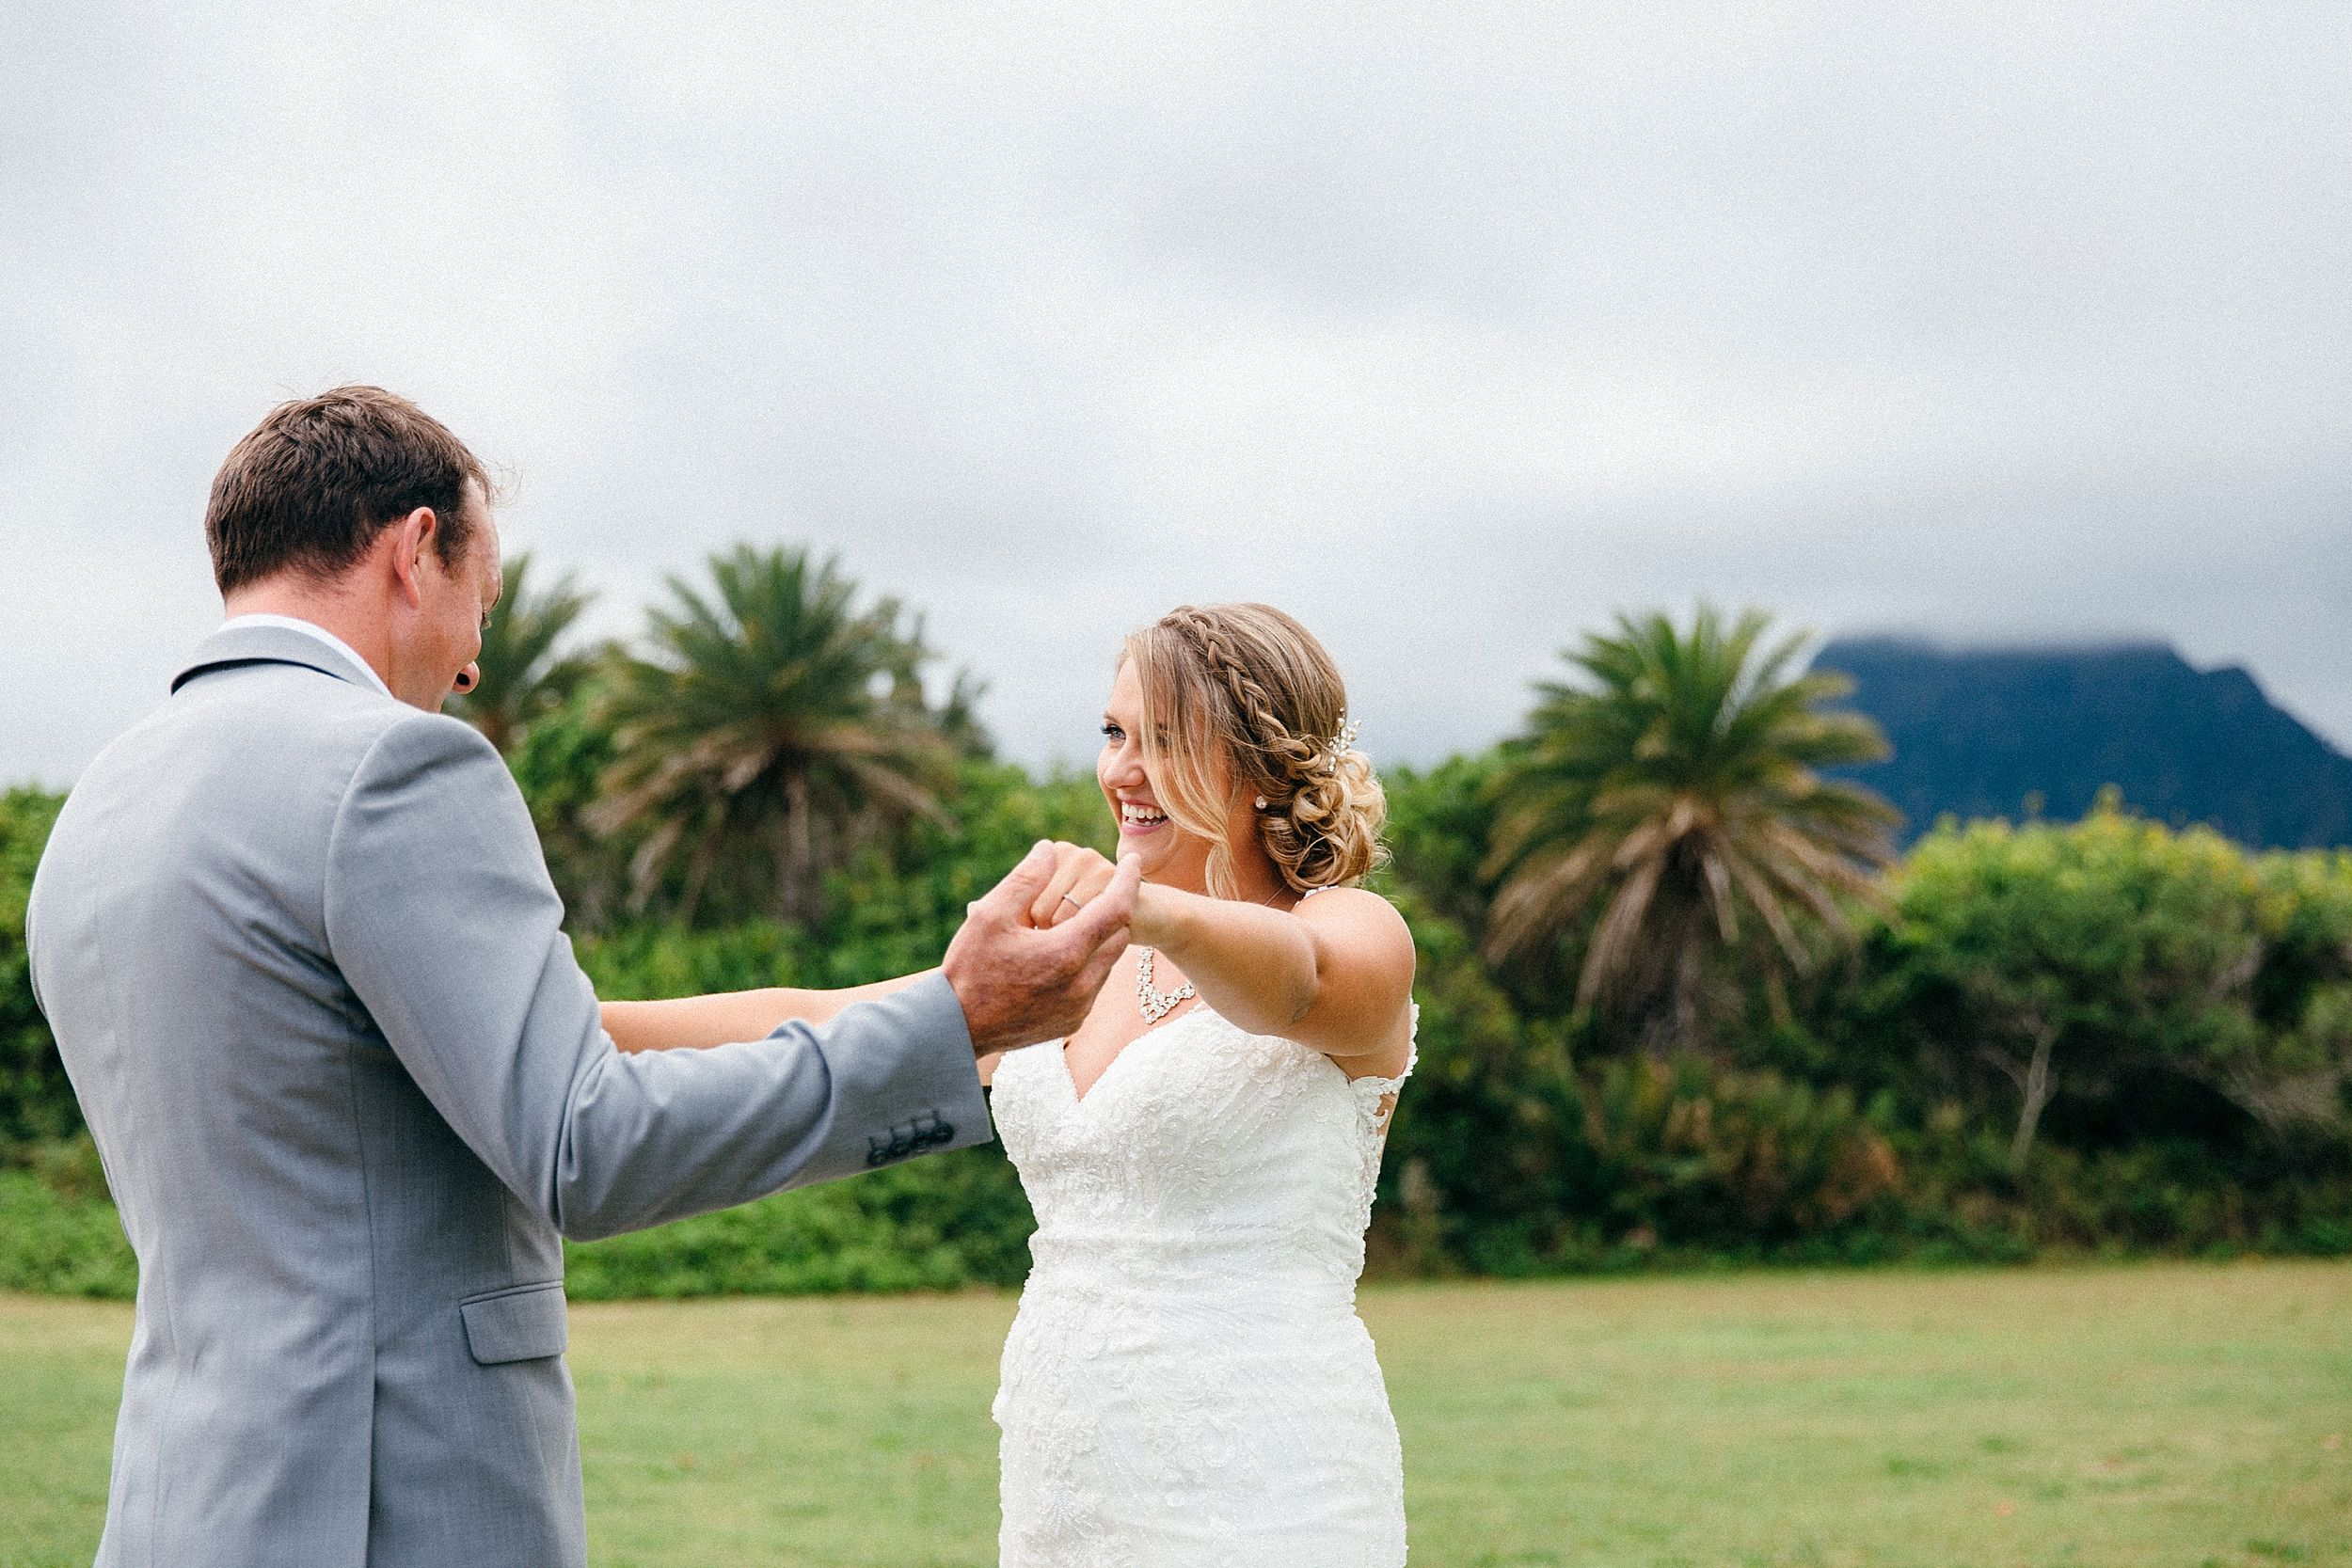 Dani & Mat Elope to Kualoa Ranch's Molii Gardens on Oahu's North Shore